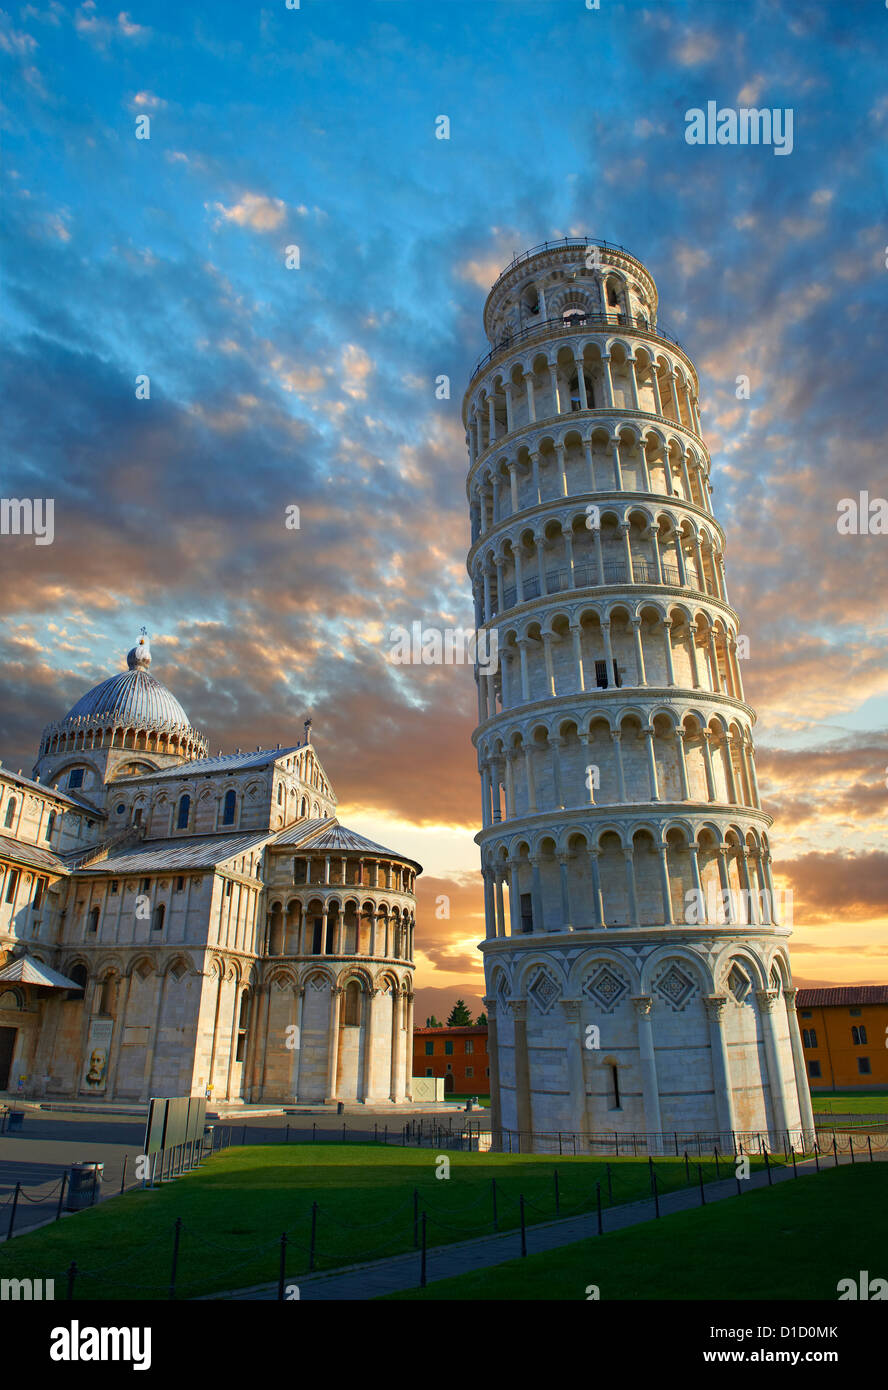 The Leaning Tower Of Pisa at sunset, Italy - Stock Image